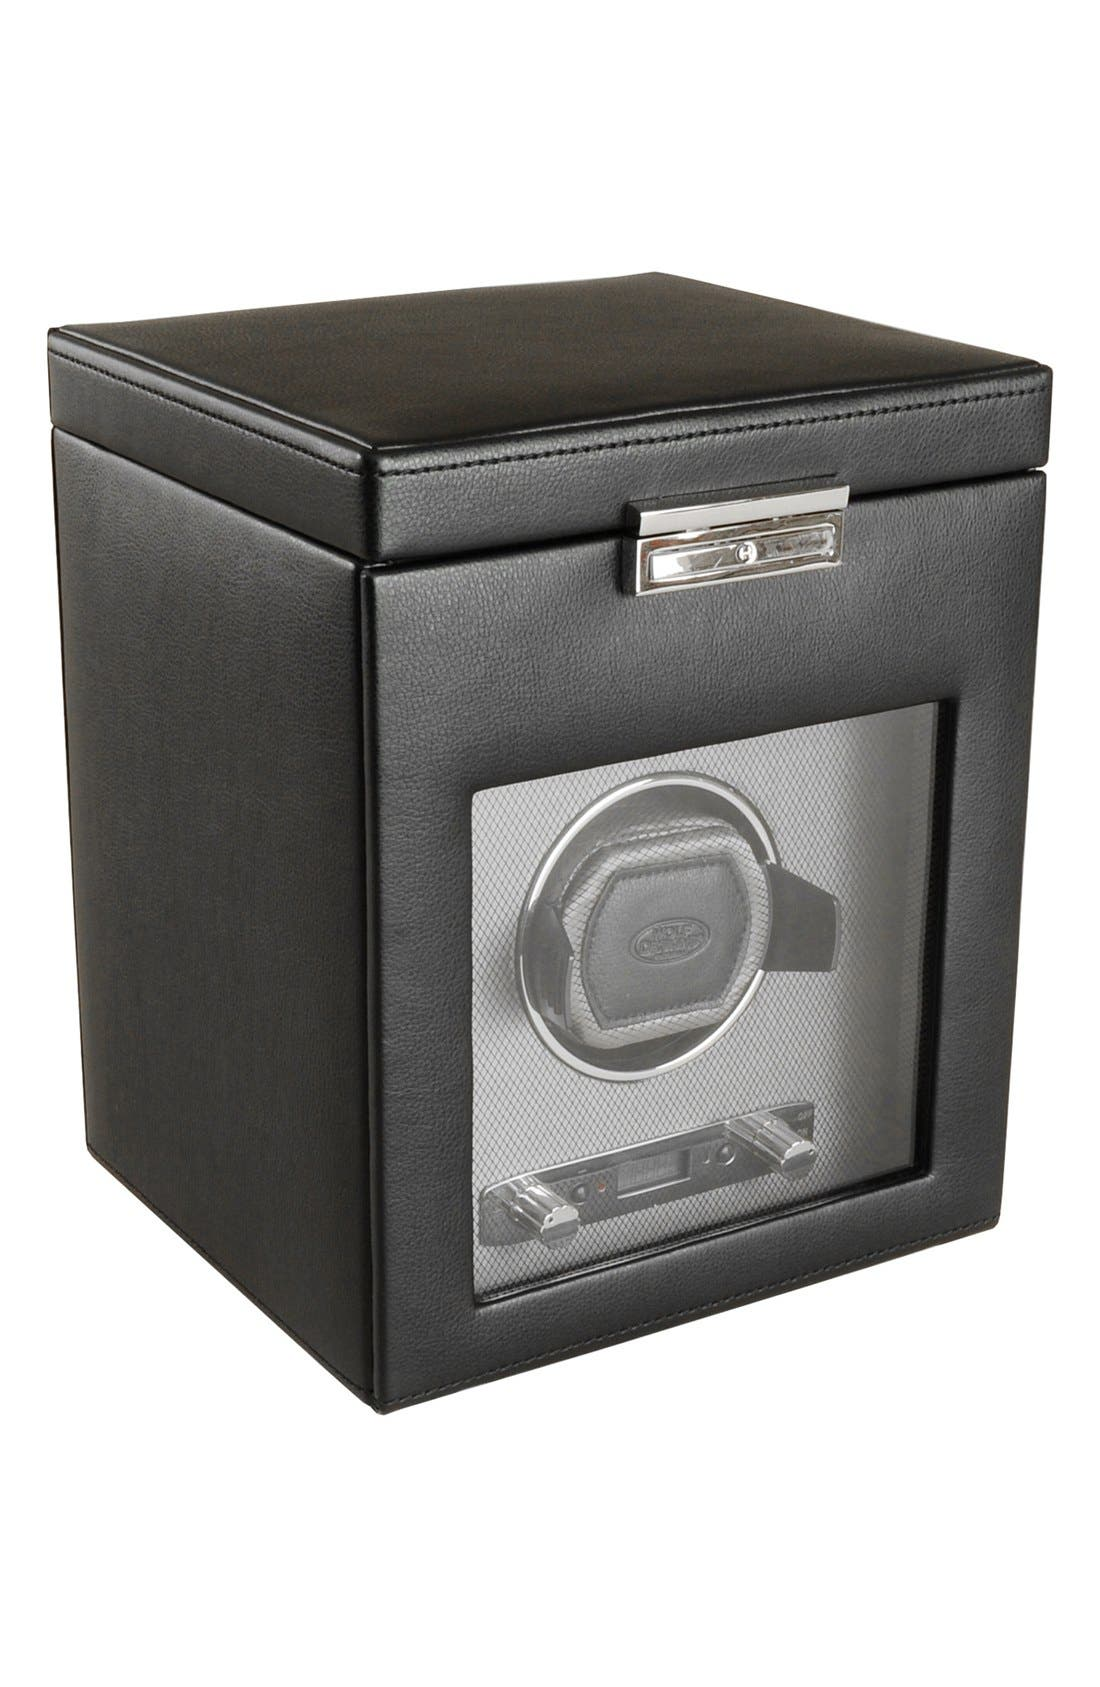 Main Image - Wolf Viceroy Watch Winder & Storage Space